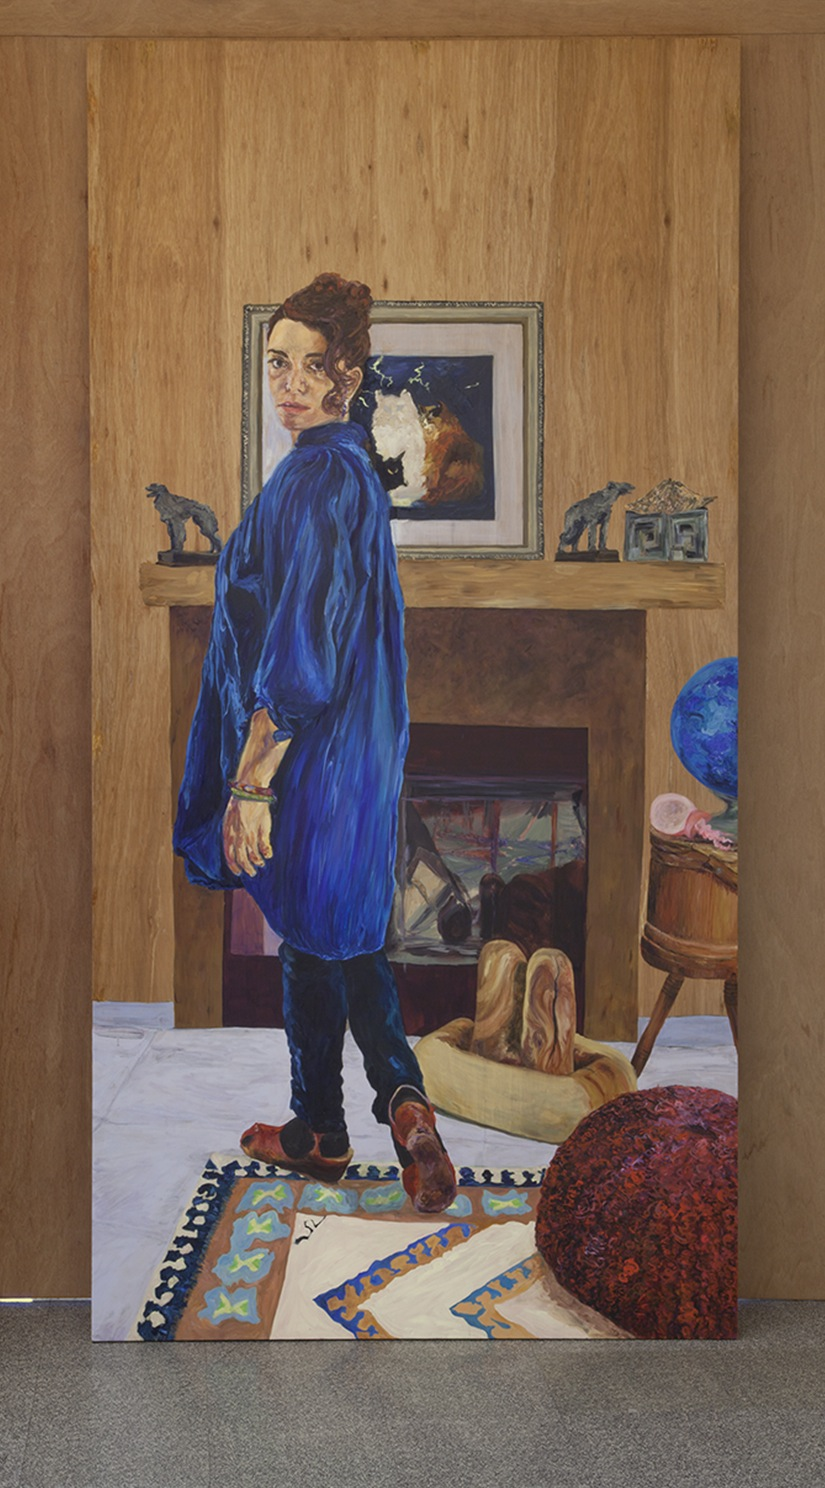 Simone Montemurno, Self-Portrait of the Artist (Mirrored View), 2012-13, oil on